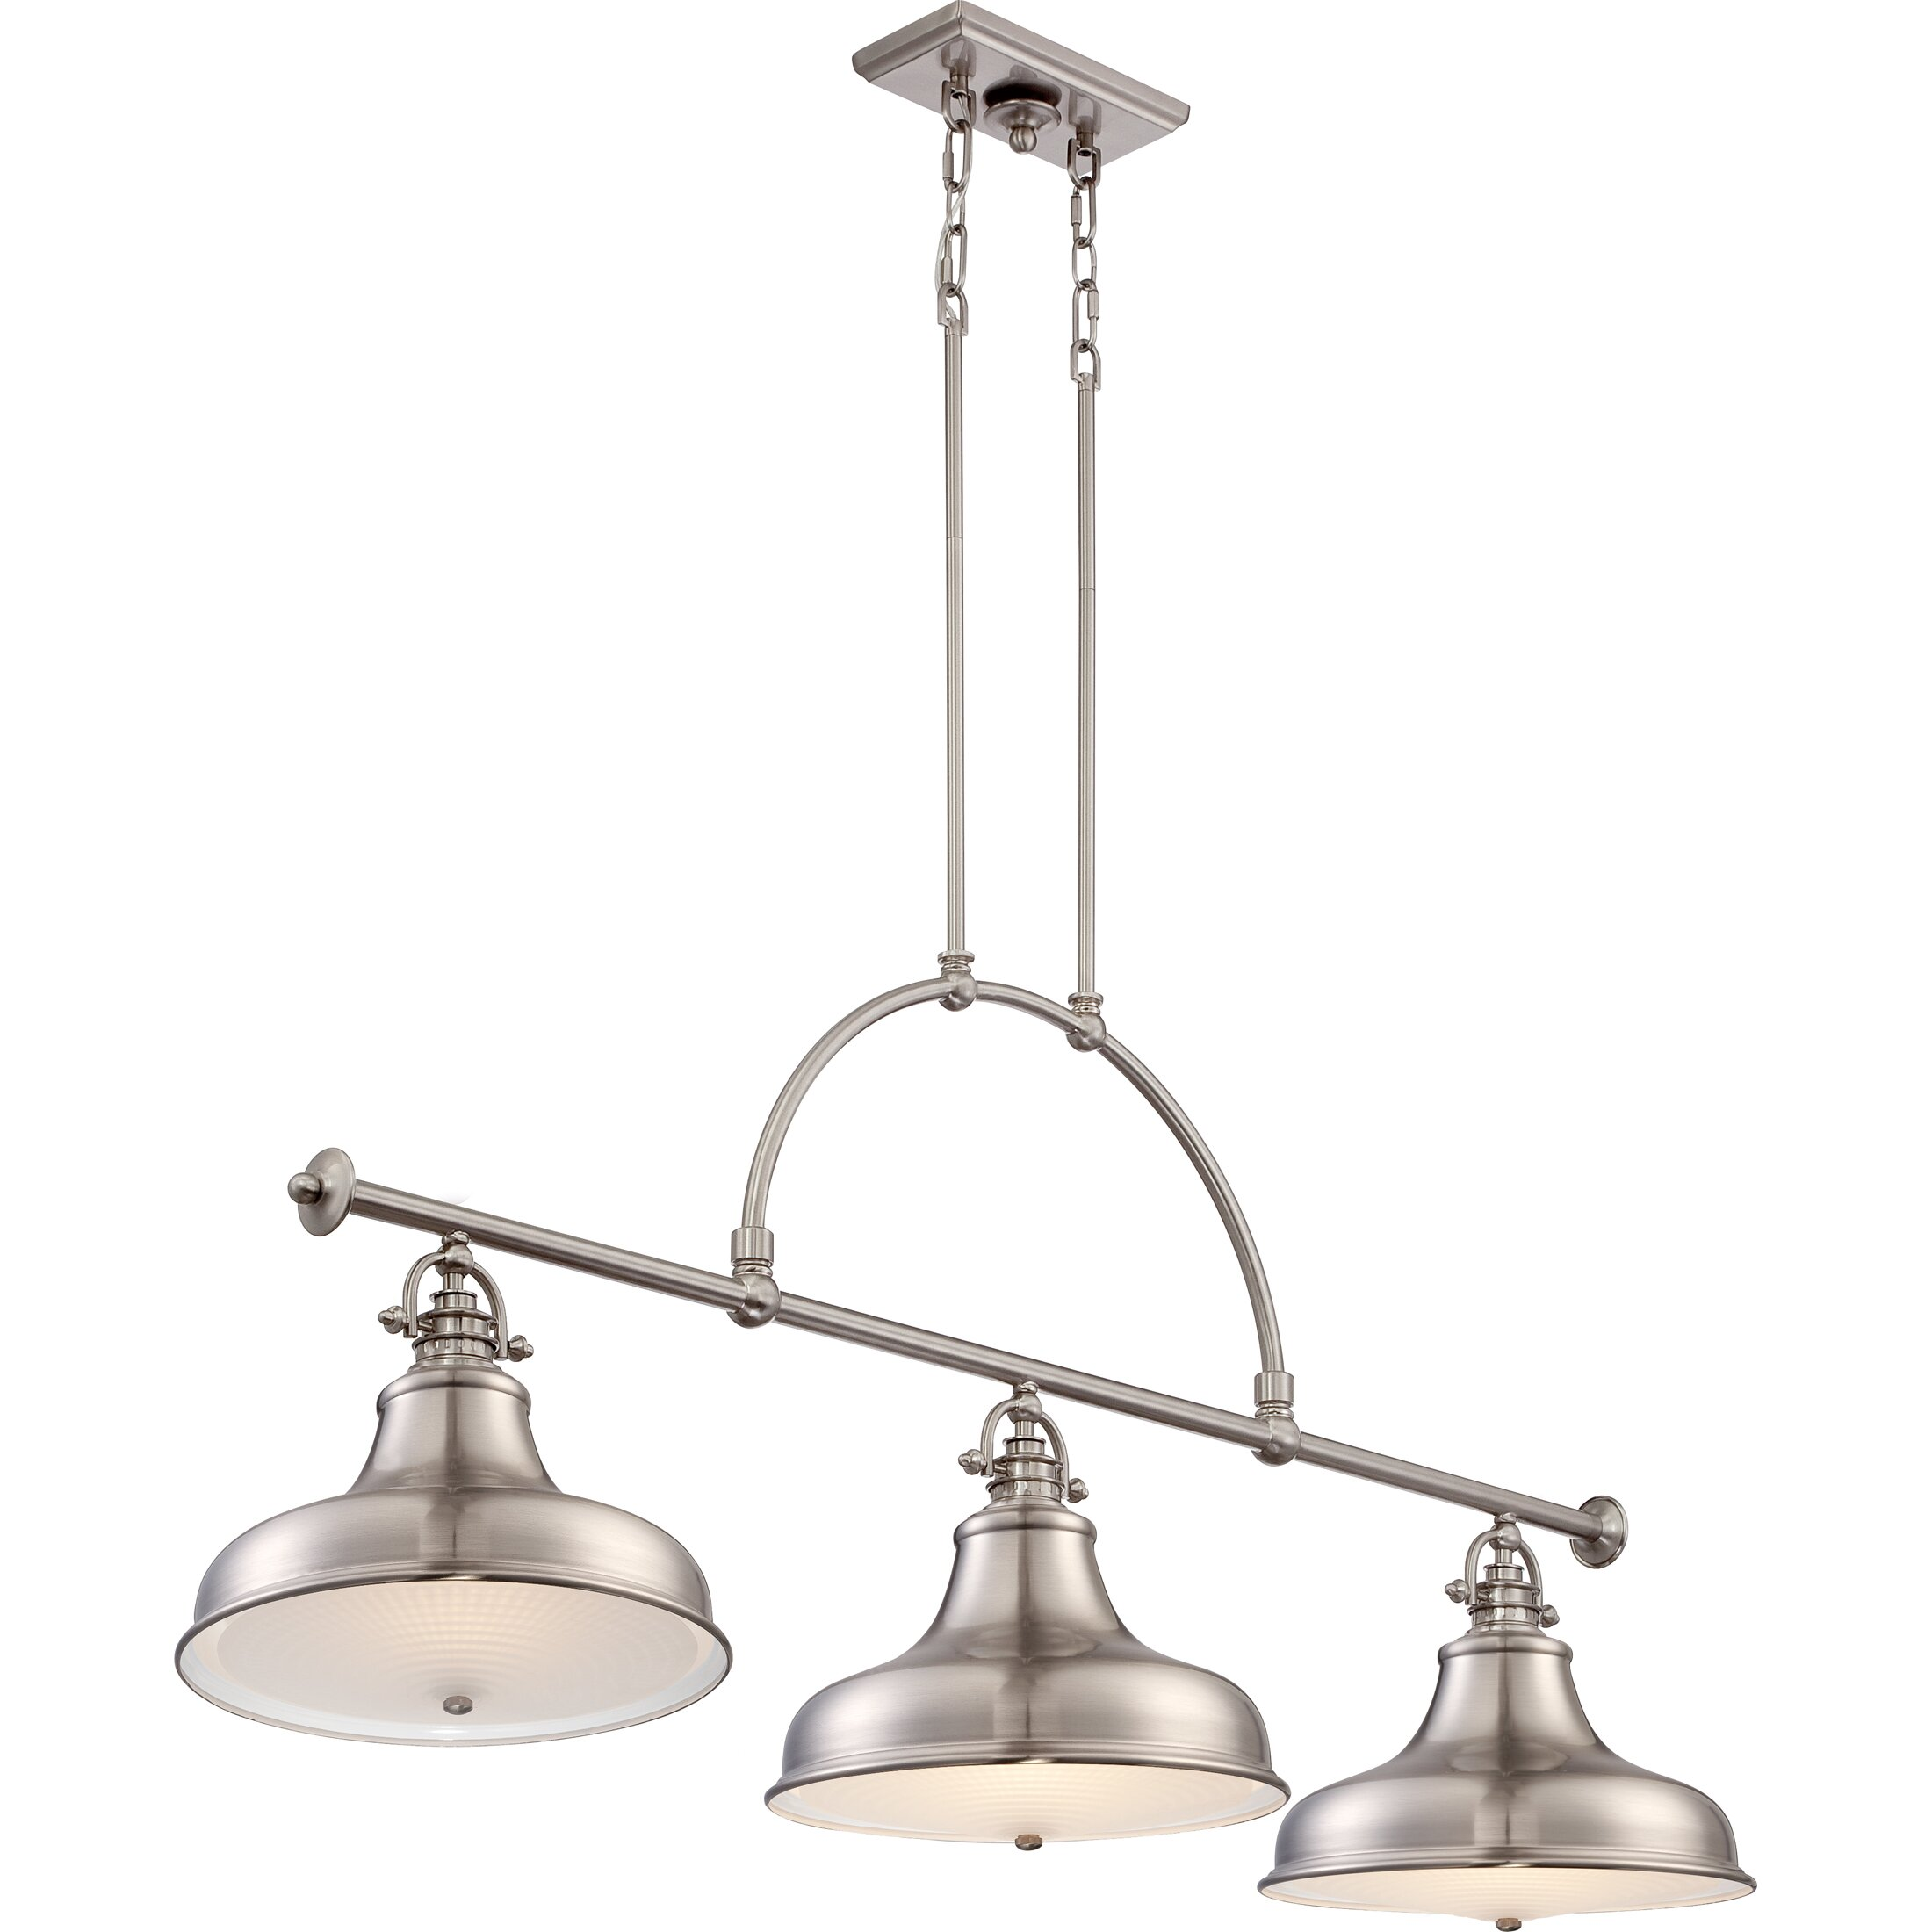 Trent austin design cetona 3 light kitchen island pendant for Kitchen island lighting pendants